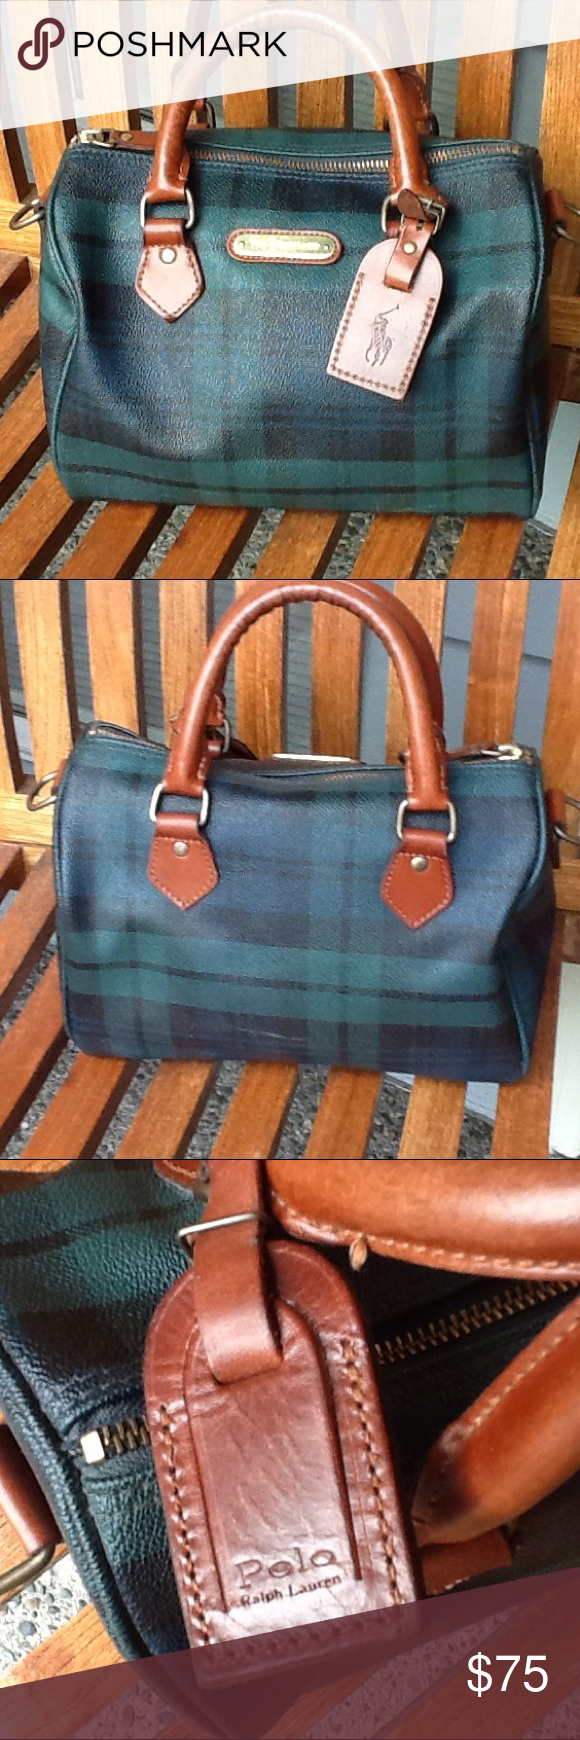 Vintage Polo Ralph Lauren handbag Green plaid with leather trim. Good  vintage used condition. There are some interior marks. About 10